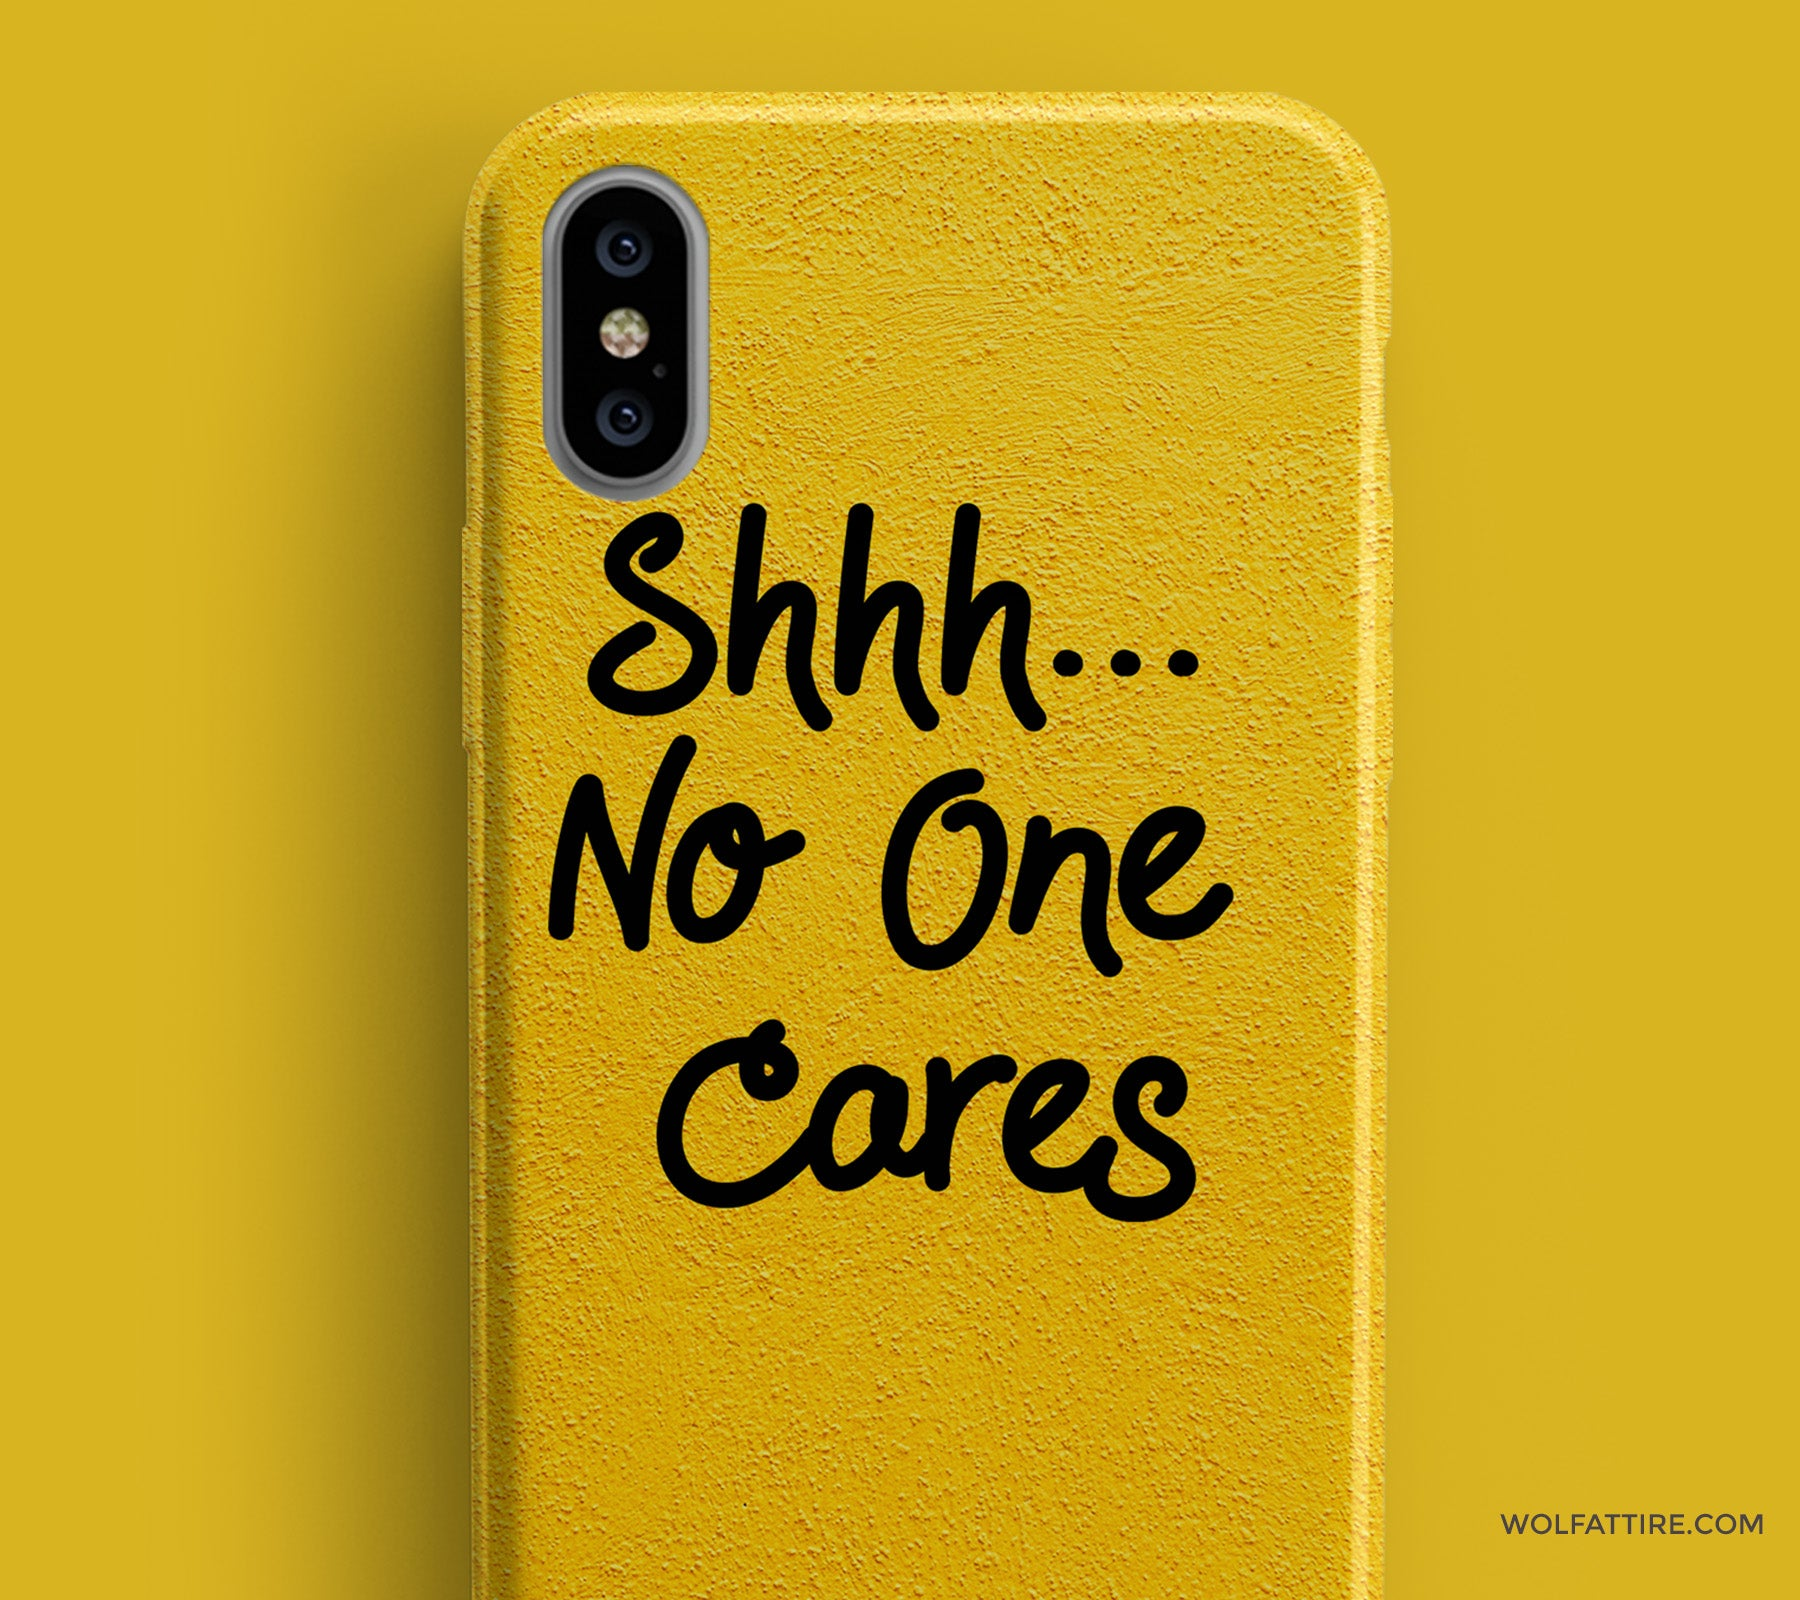 76c0ddbcb6d shhh no one cares iphone x covers and cases online india - wolfattire